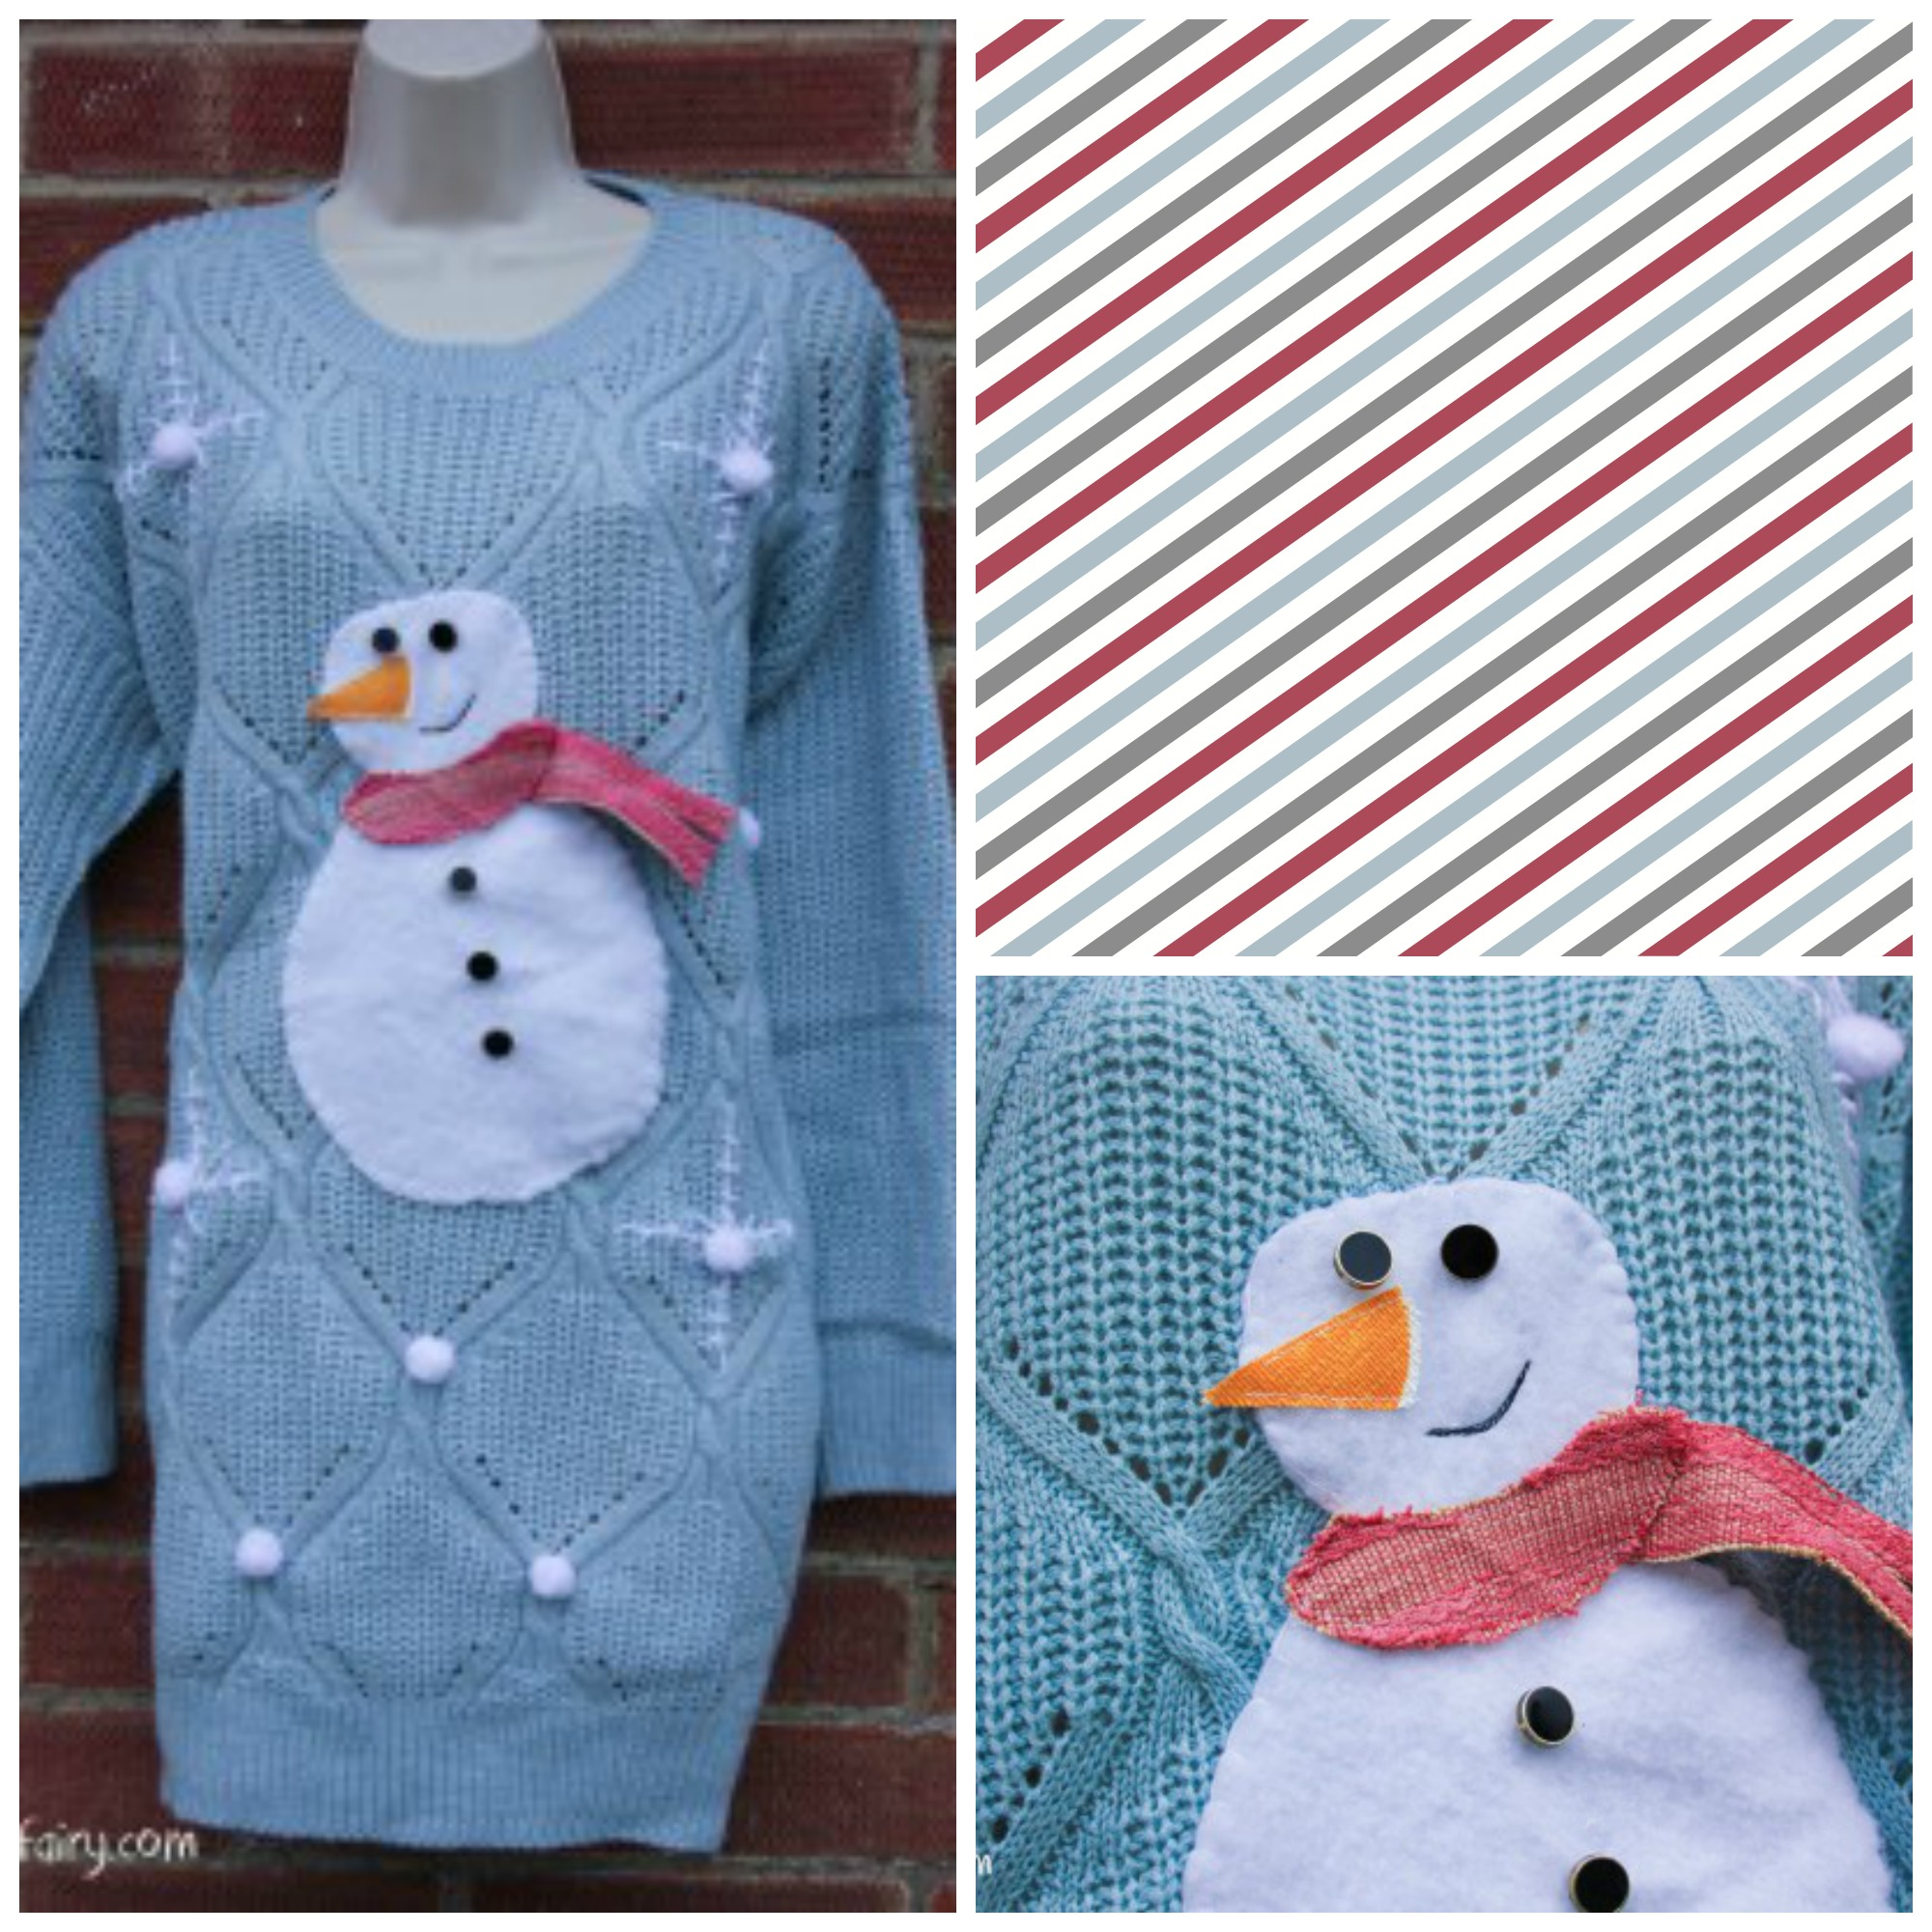 8 Thrifty Diy Christmas Jumpers The Turtle Mat Blog For